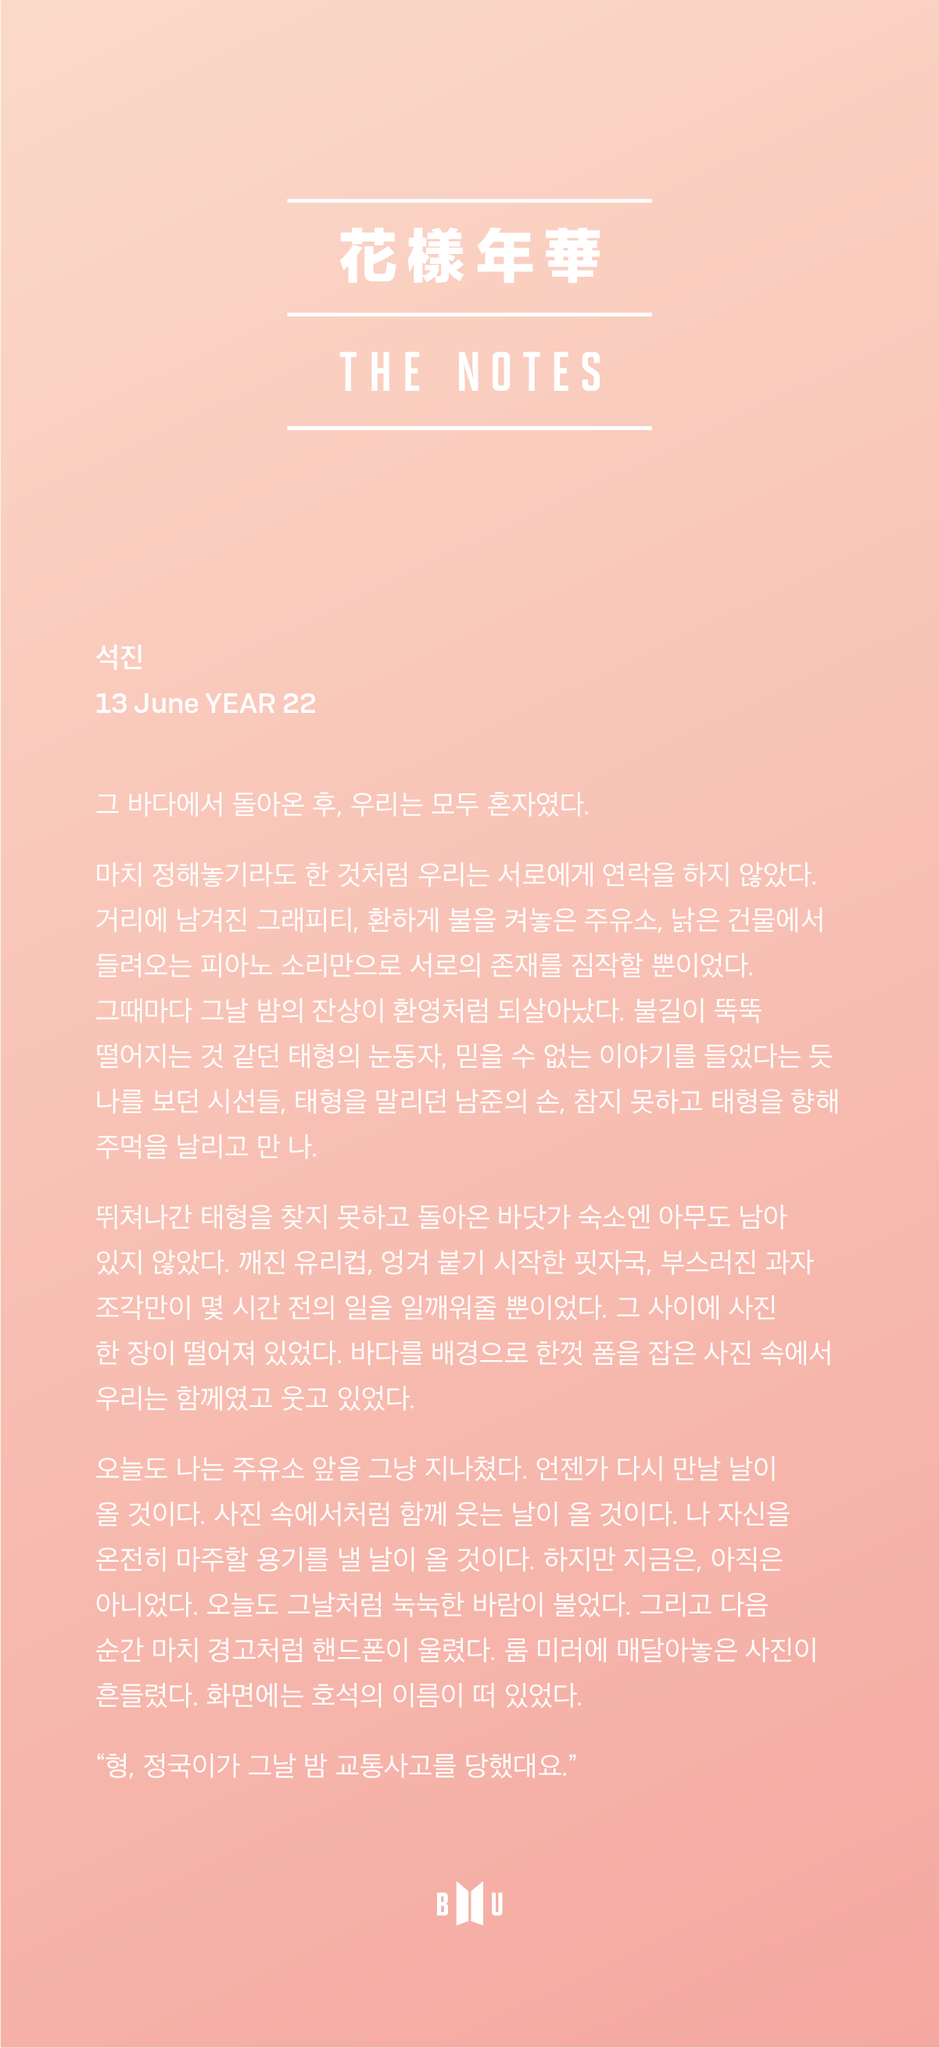 #BTS #방탄소년단 #화양연화TheNotes https://t.co/uWiXlXt9gC